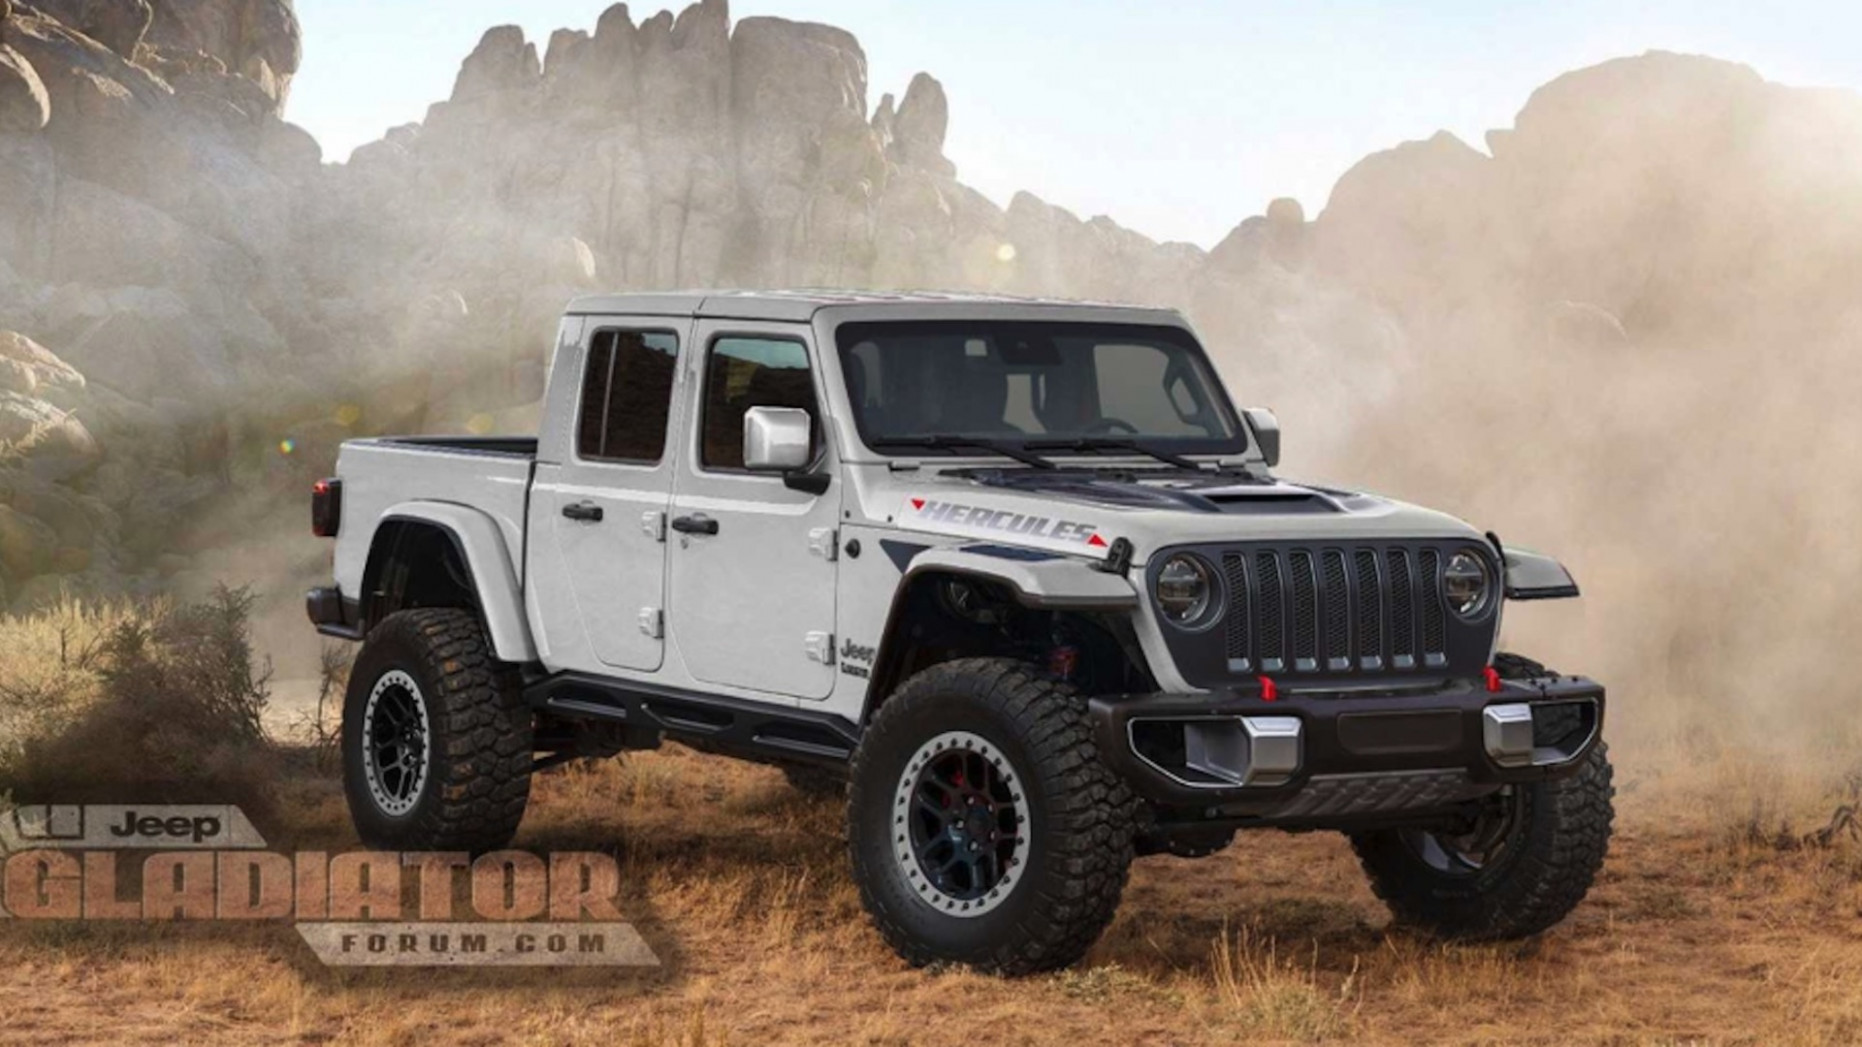 New Model and Performance When Will The 2022 Jeep Gladiator Be Available